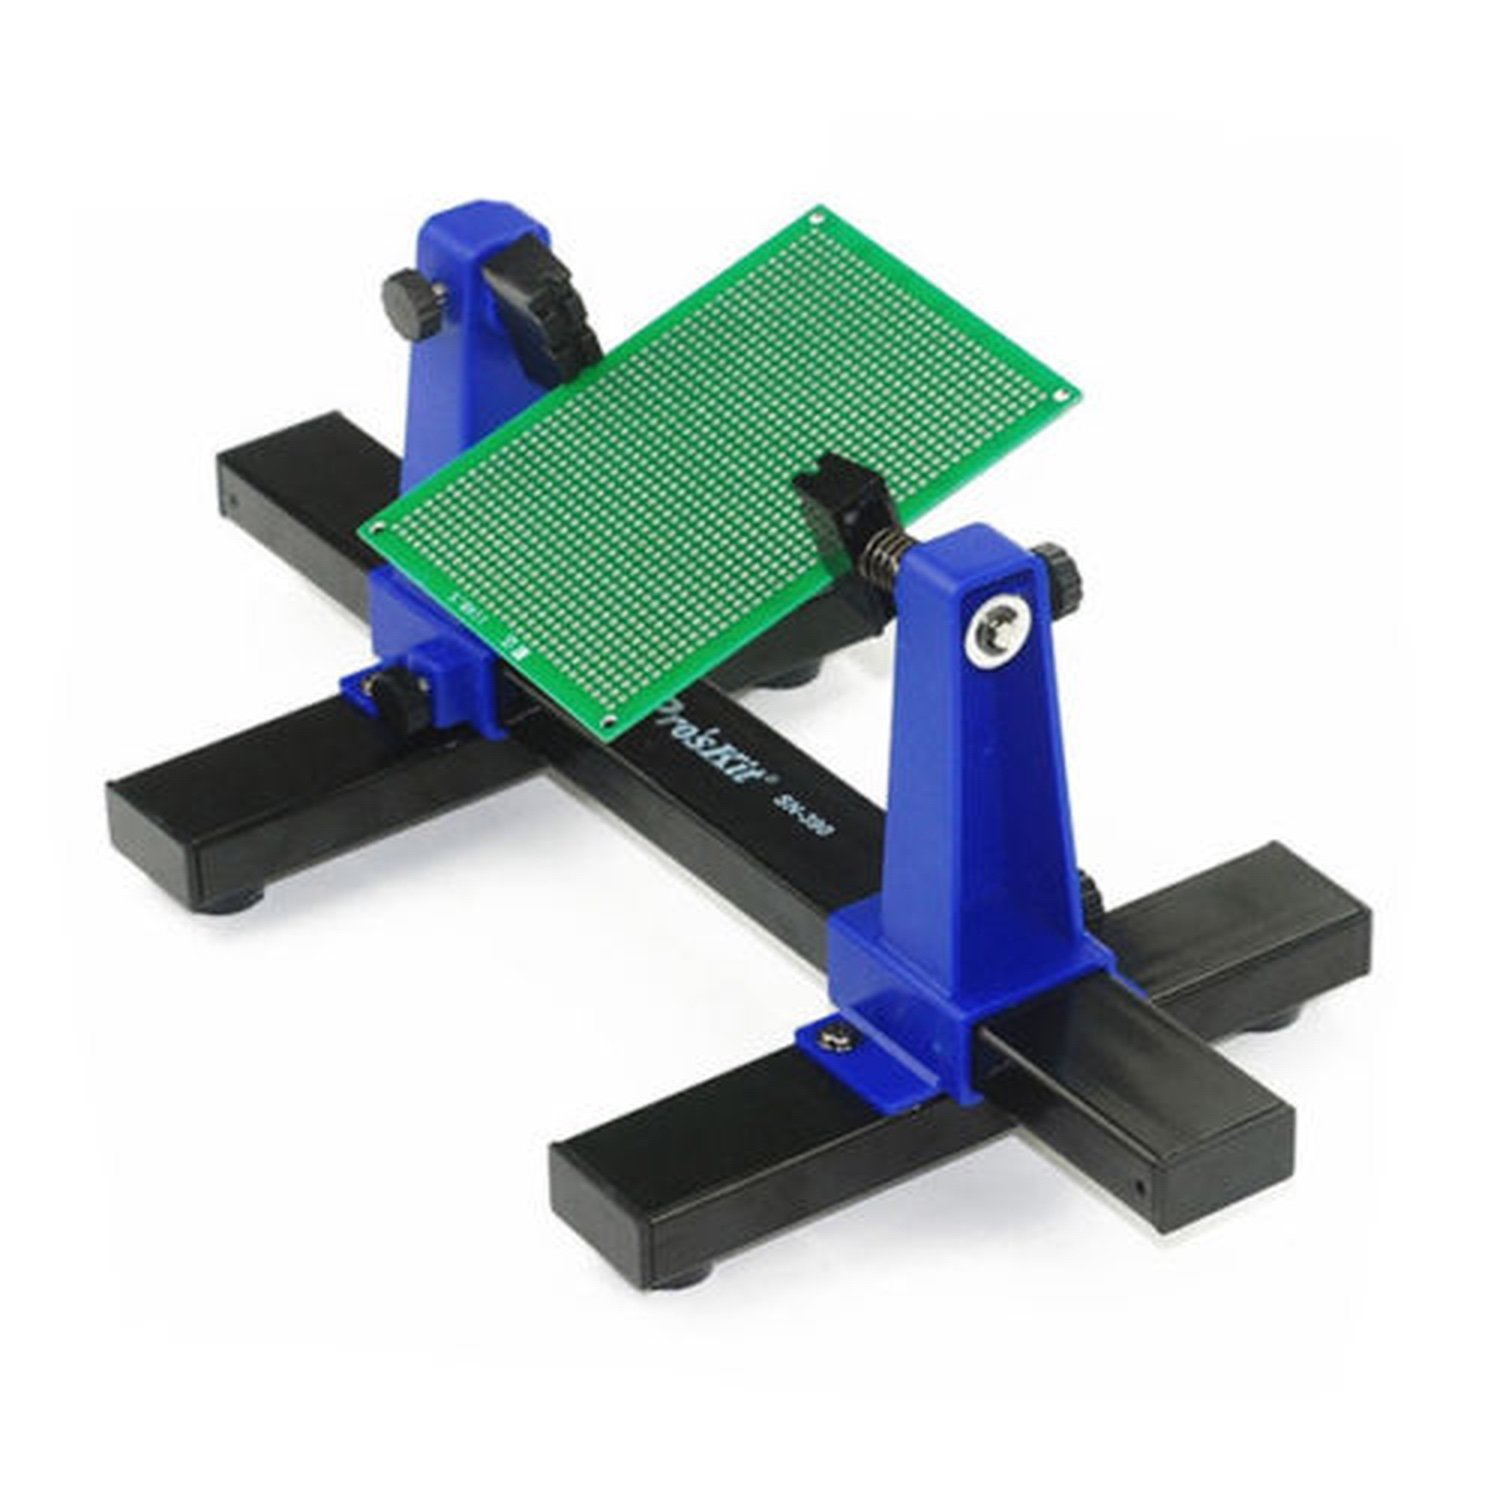 ProsKit SN-390 PCB Holder Printed Circuit Board Soldering and Assembly стоимость